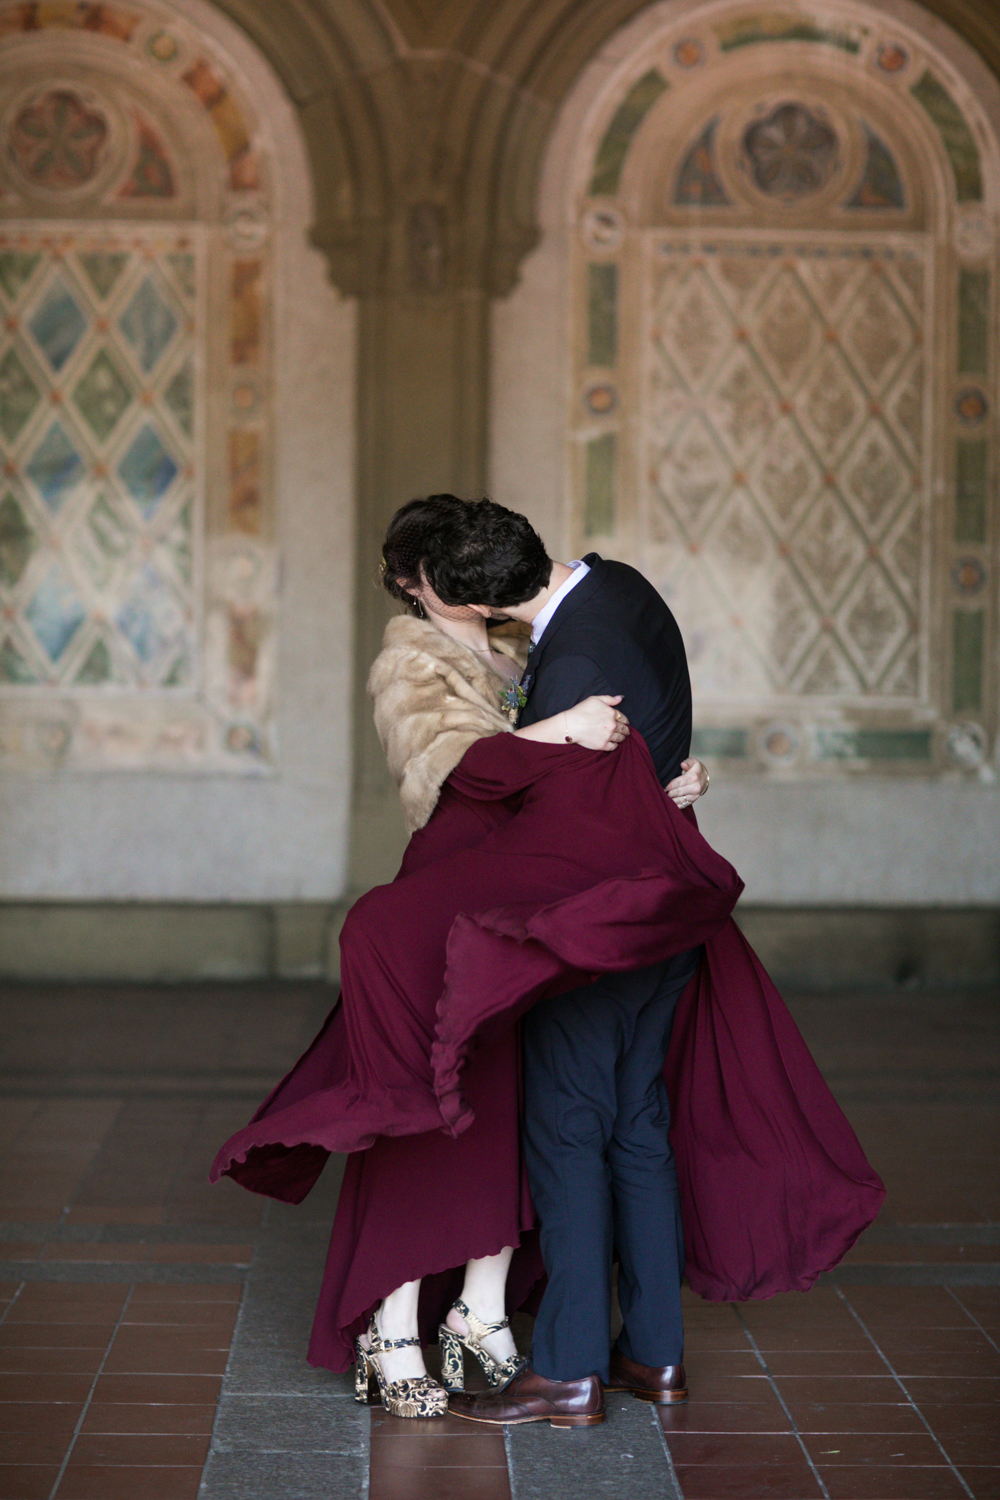 Portrait of the bide and groom kissing on their wedding day.